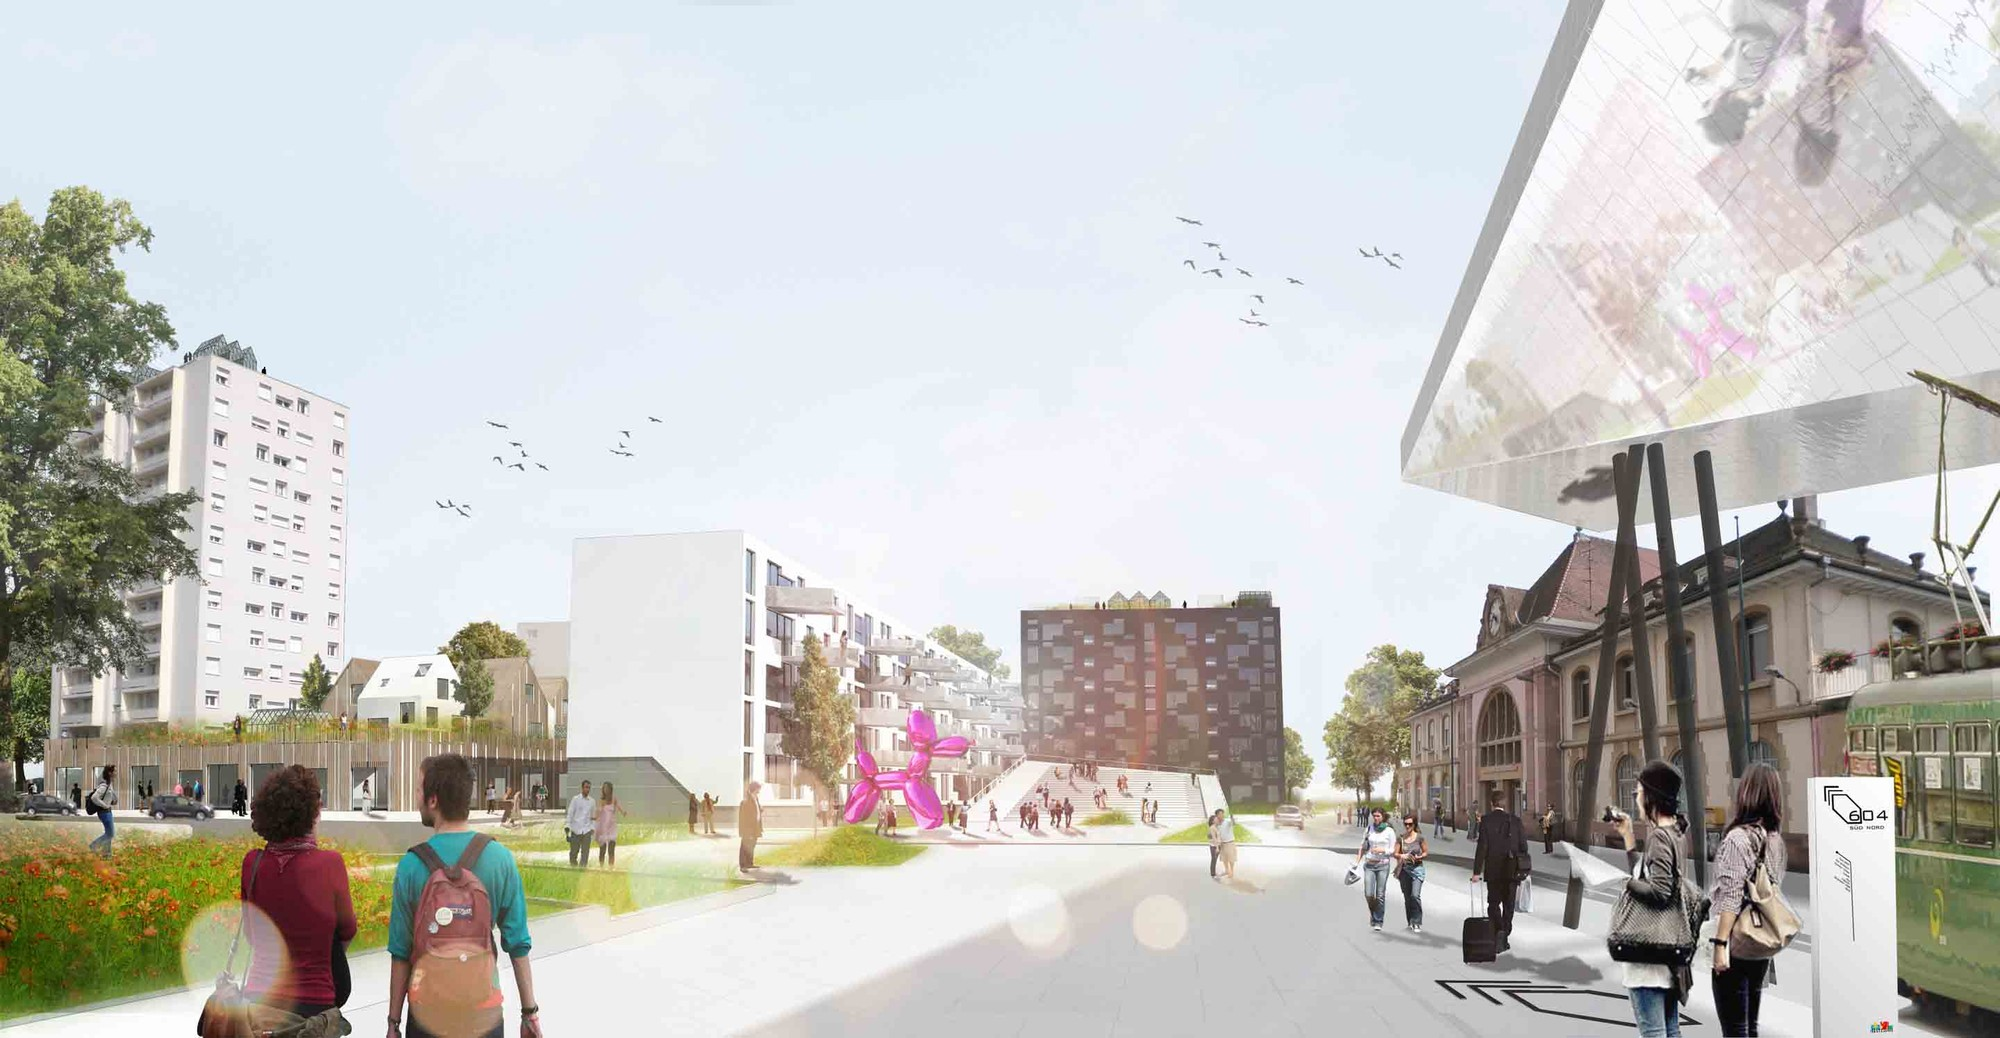 Das Band meiner Stadt (The Band of My City) Winning Proposal / da architecture, © da architecture